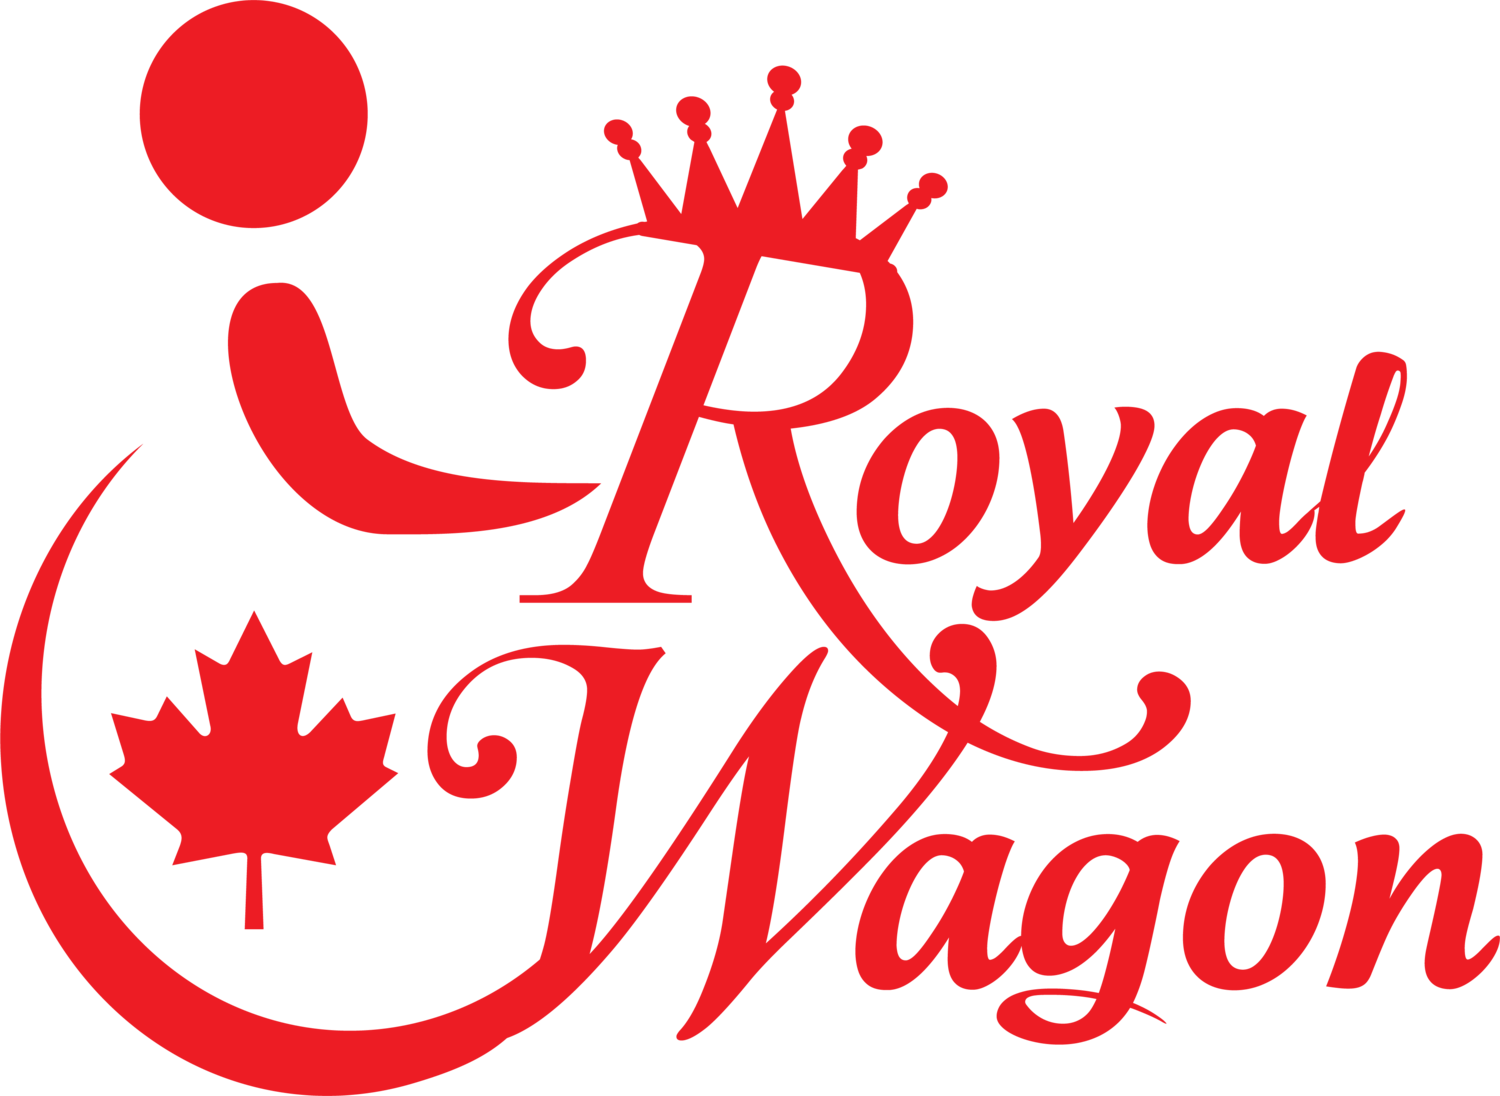 Royal Wagon